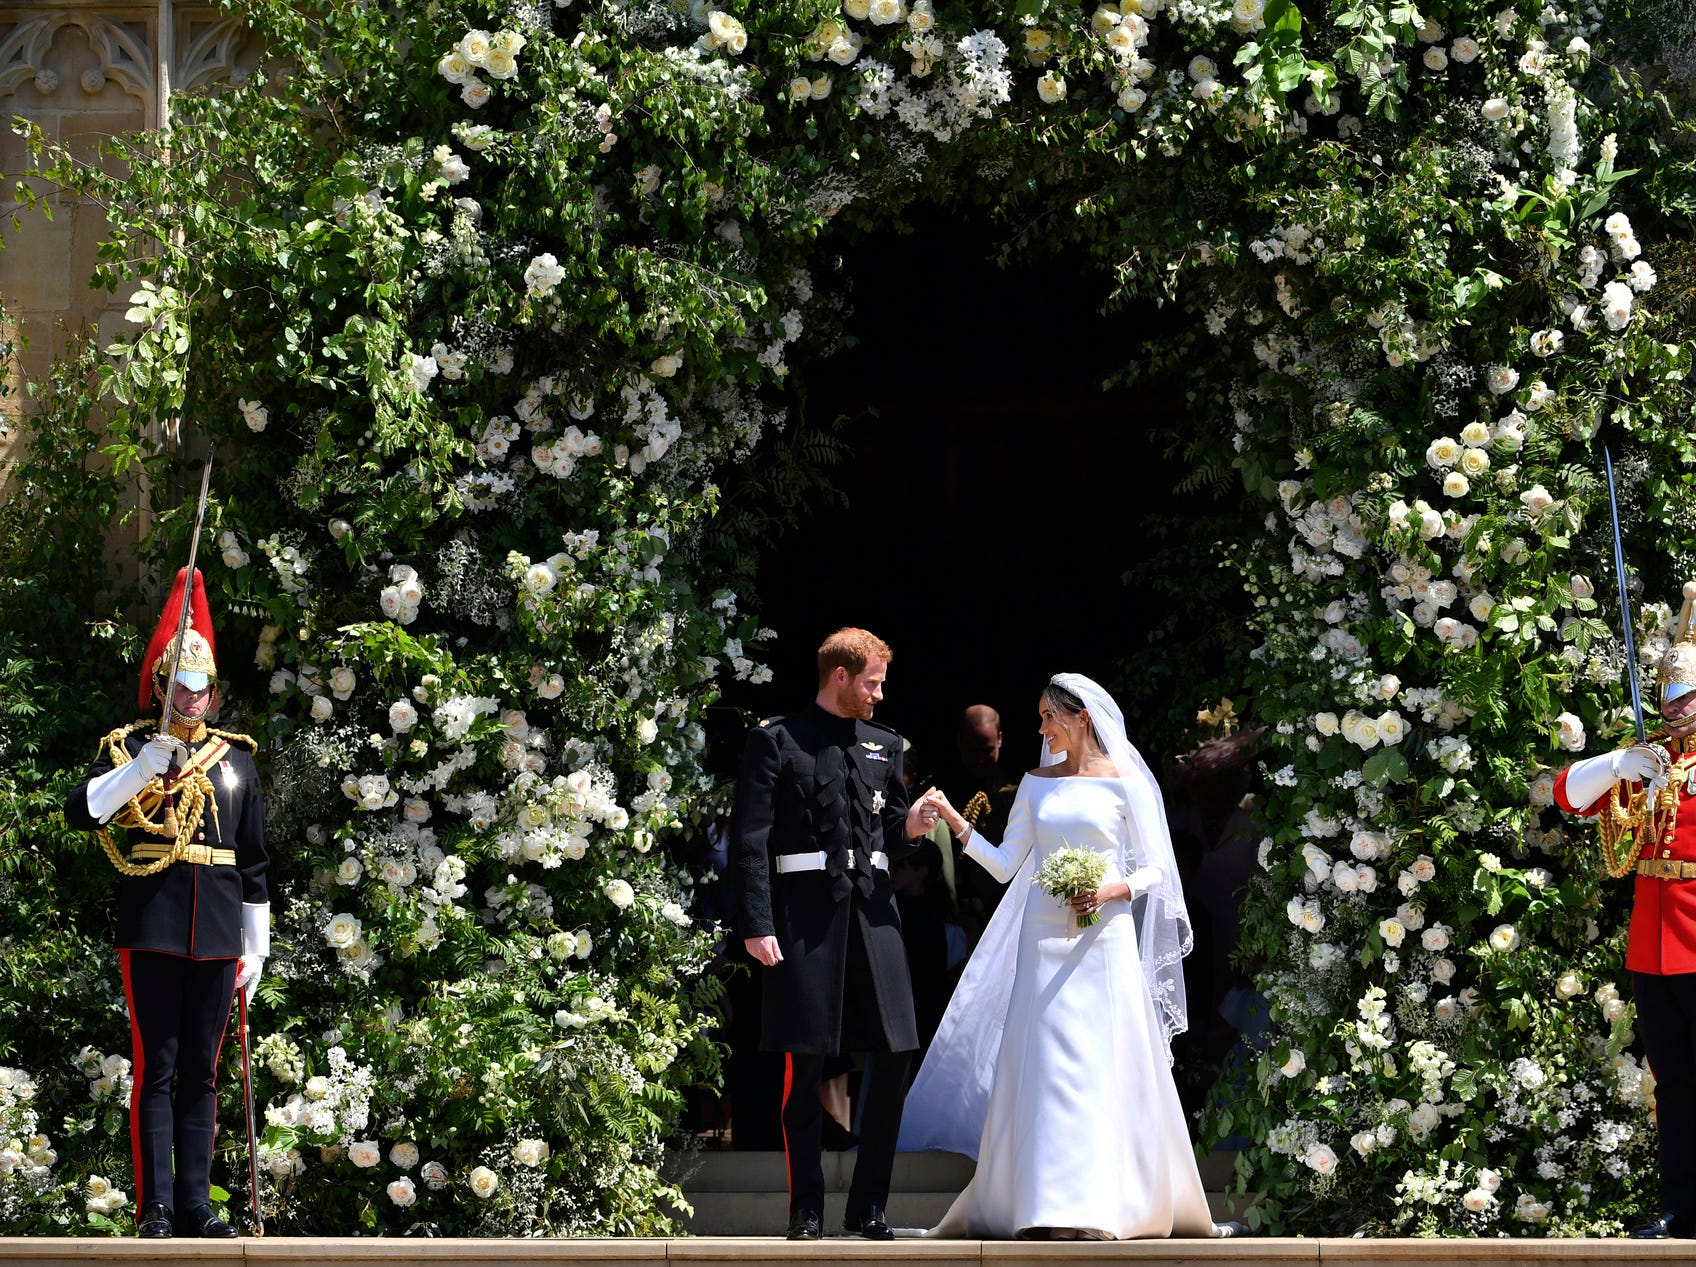 Prince Harry and Meghan Markle leave St. George's Chapel in Windsor Castle after their wedding ceremony in Windsor, England, near London, on May 19, 2018.